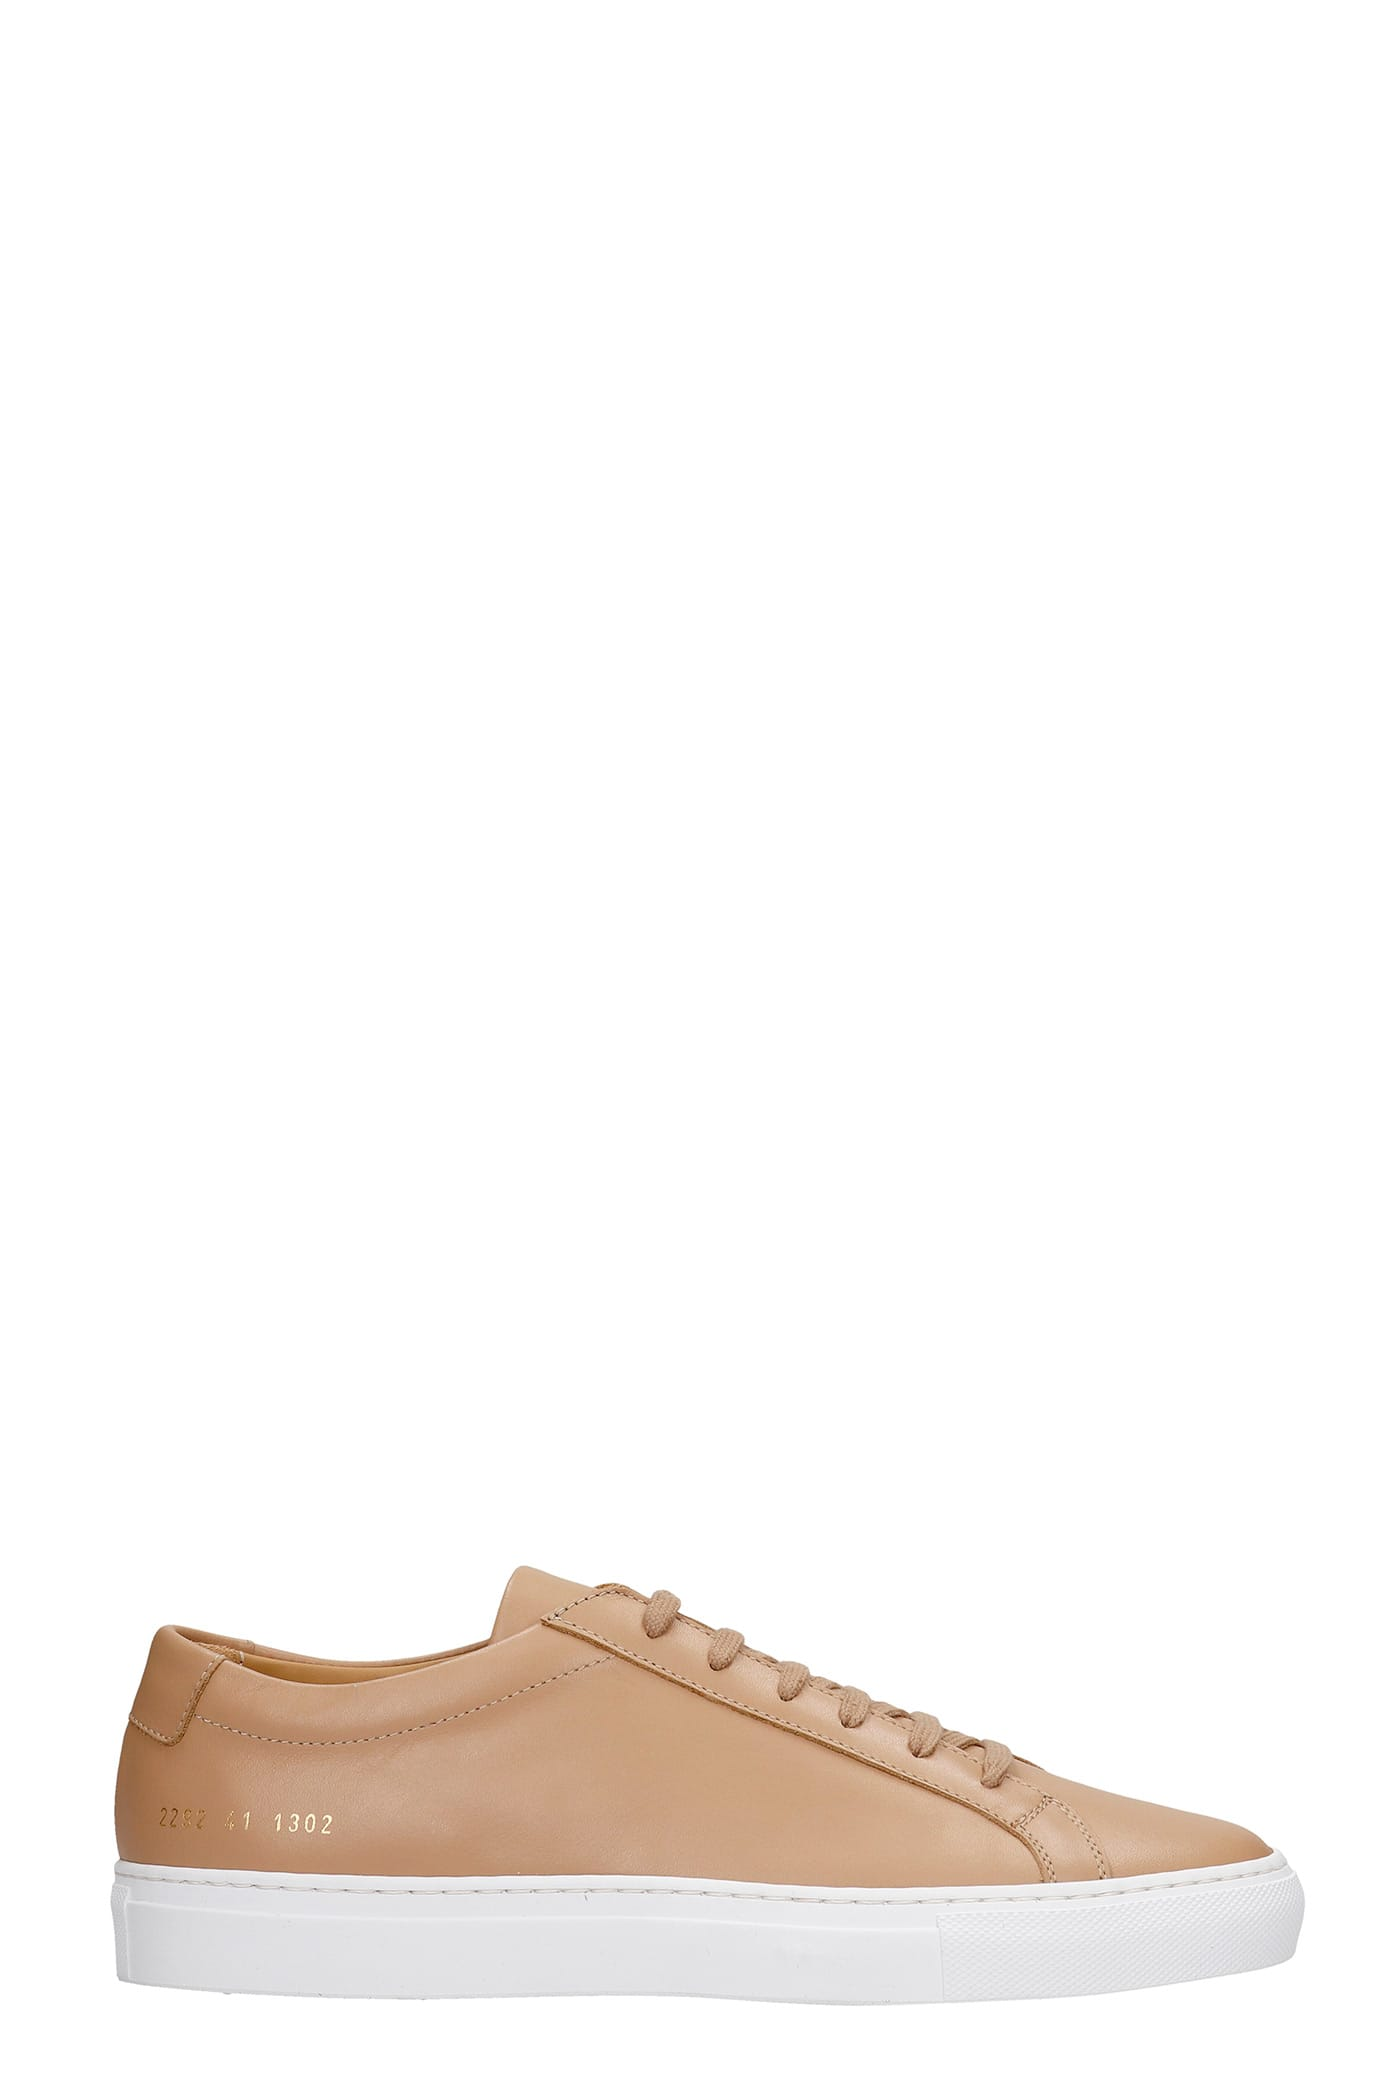 Common Projects ACHILLE SNEAKERS IN LEATHER COLOR LEATHER